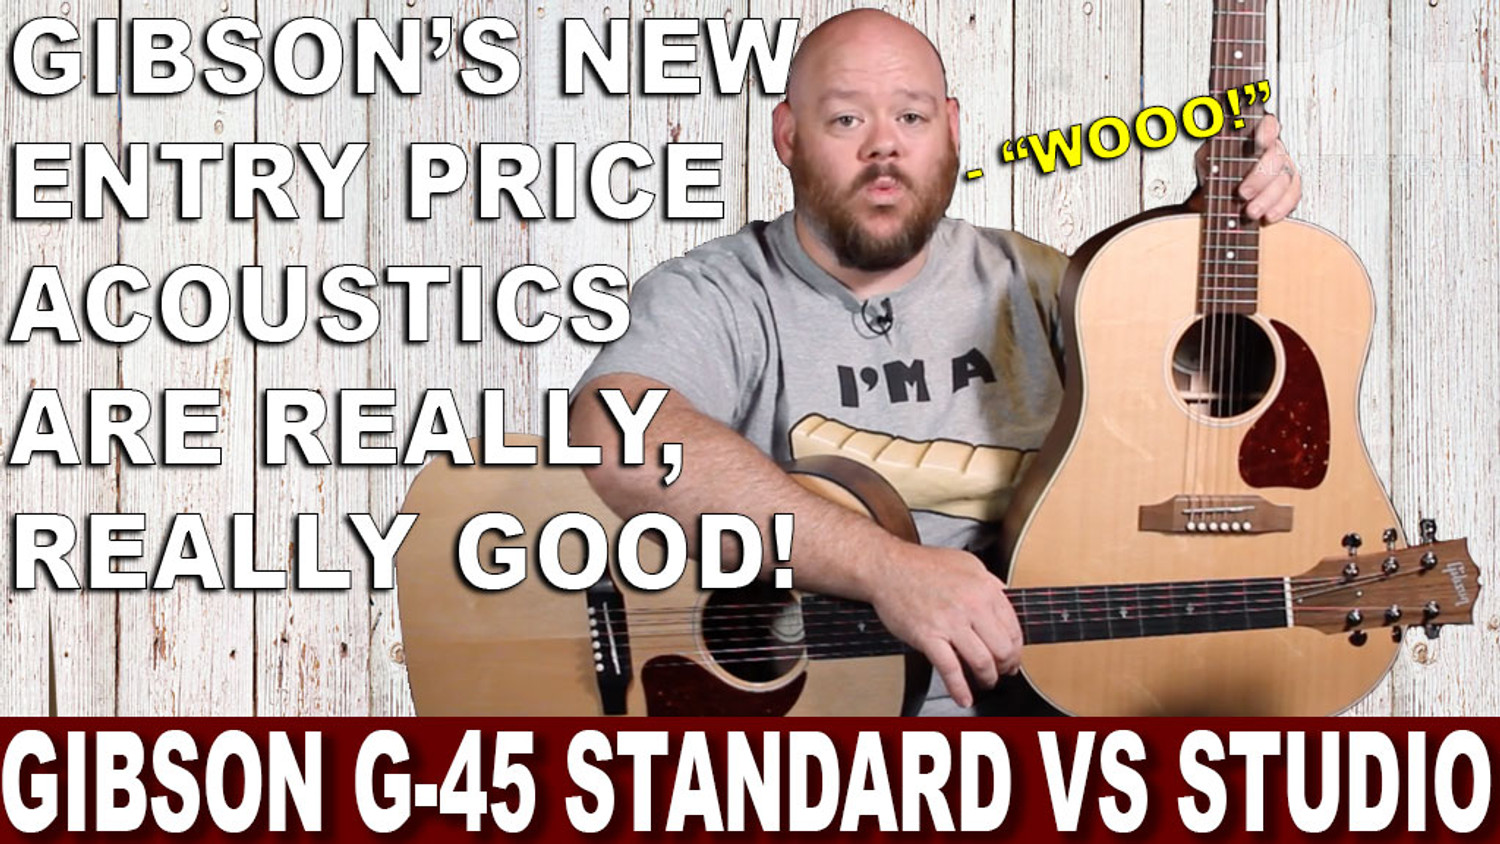 Gibson G-45 Studio and G-45 Standard Guitars Review